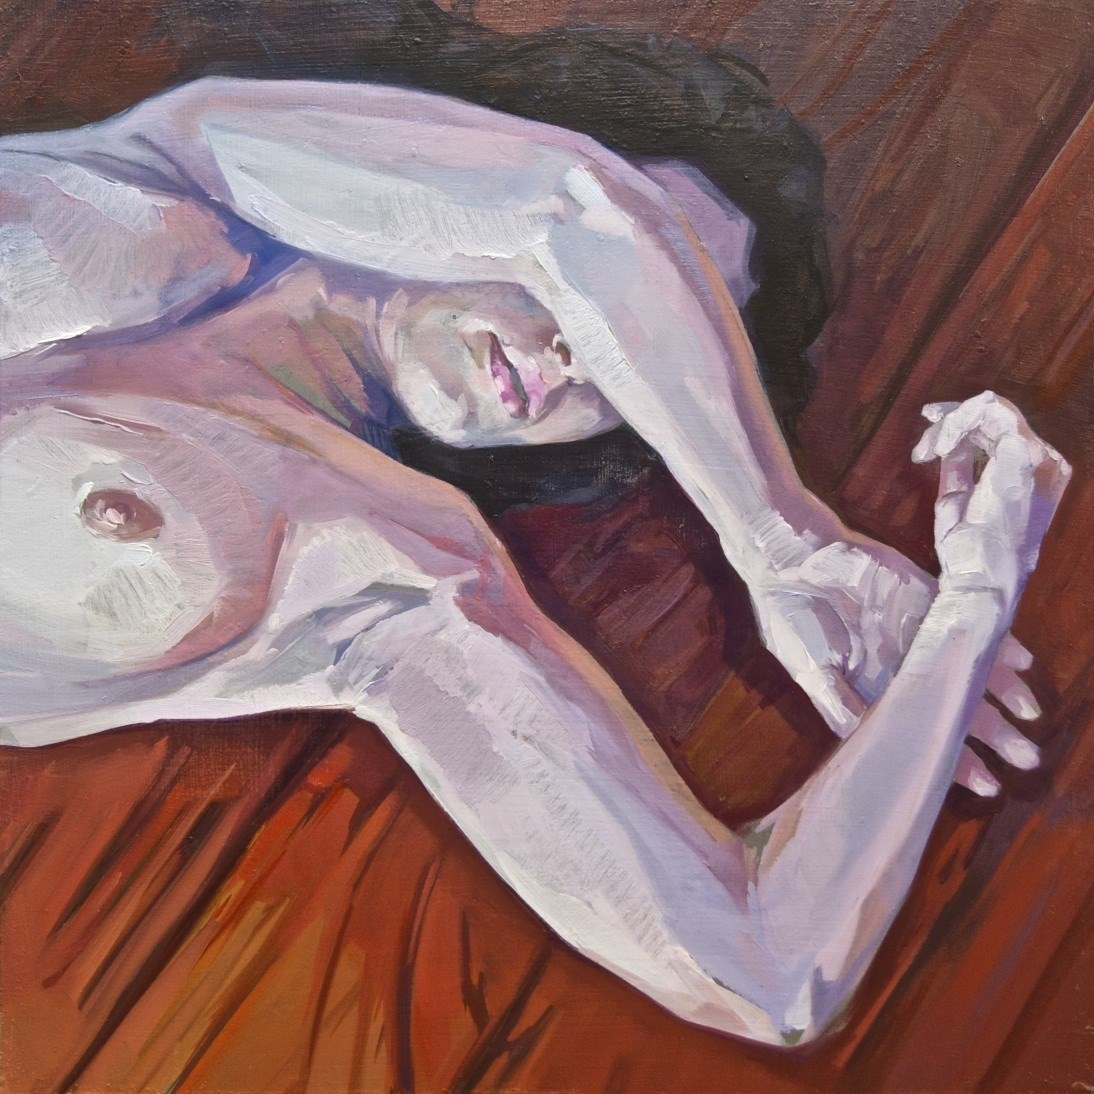 Sencilla tarima roja., original Body Oil Painting by Alejandro Casanova